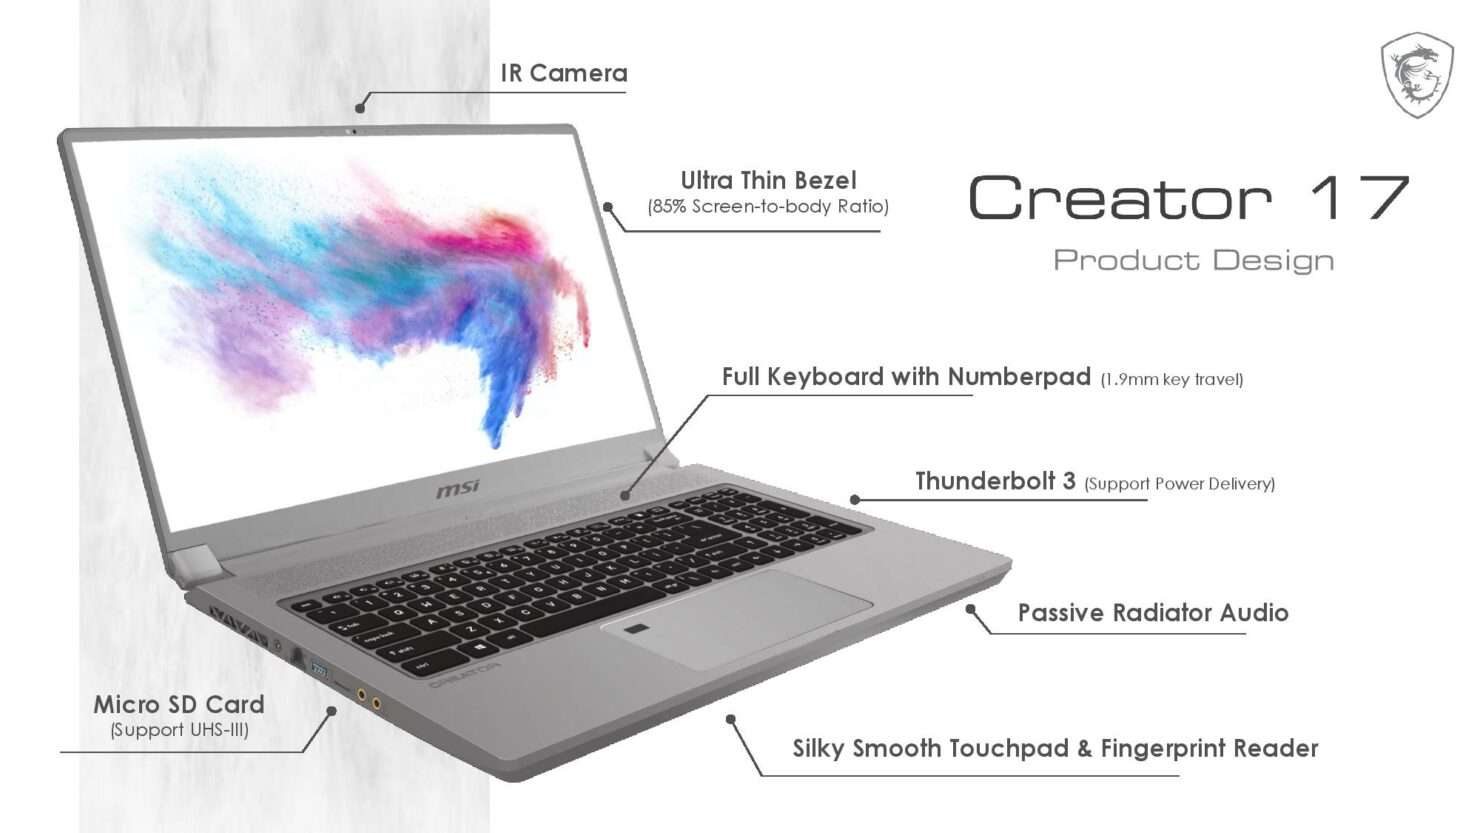 msi-creator-17-product-information-page-005-2